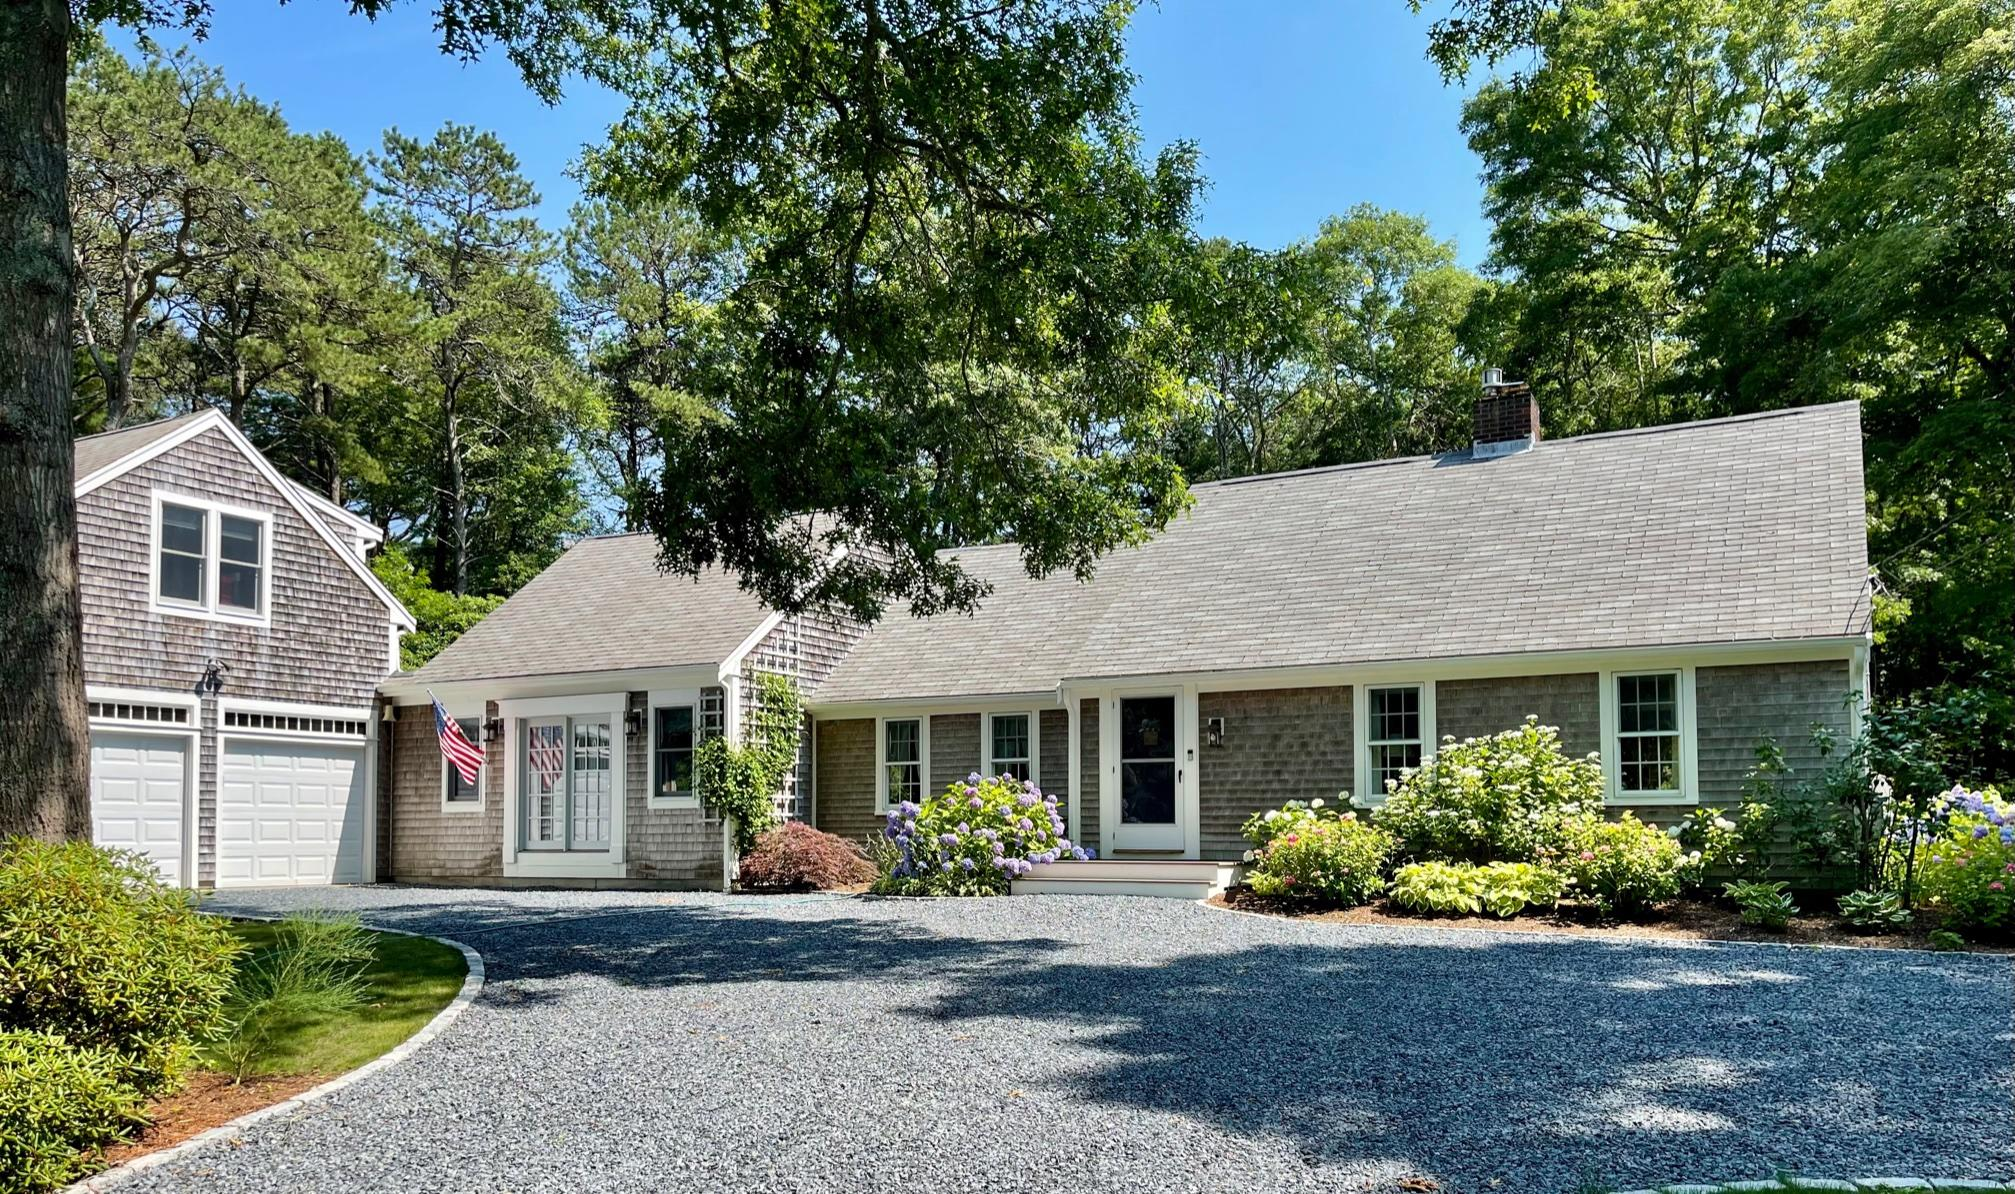 53 Winslow Road, North Falmouth MA, 02556 details